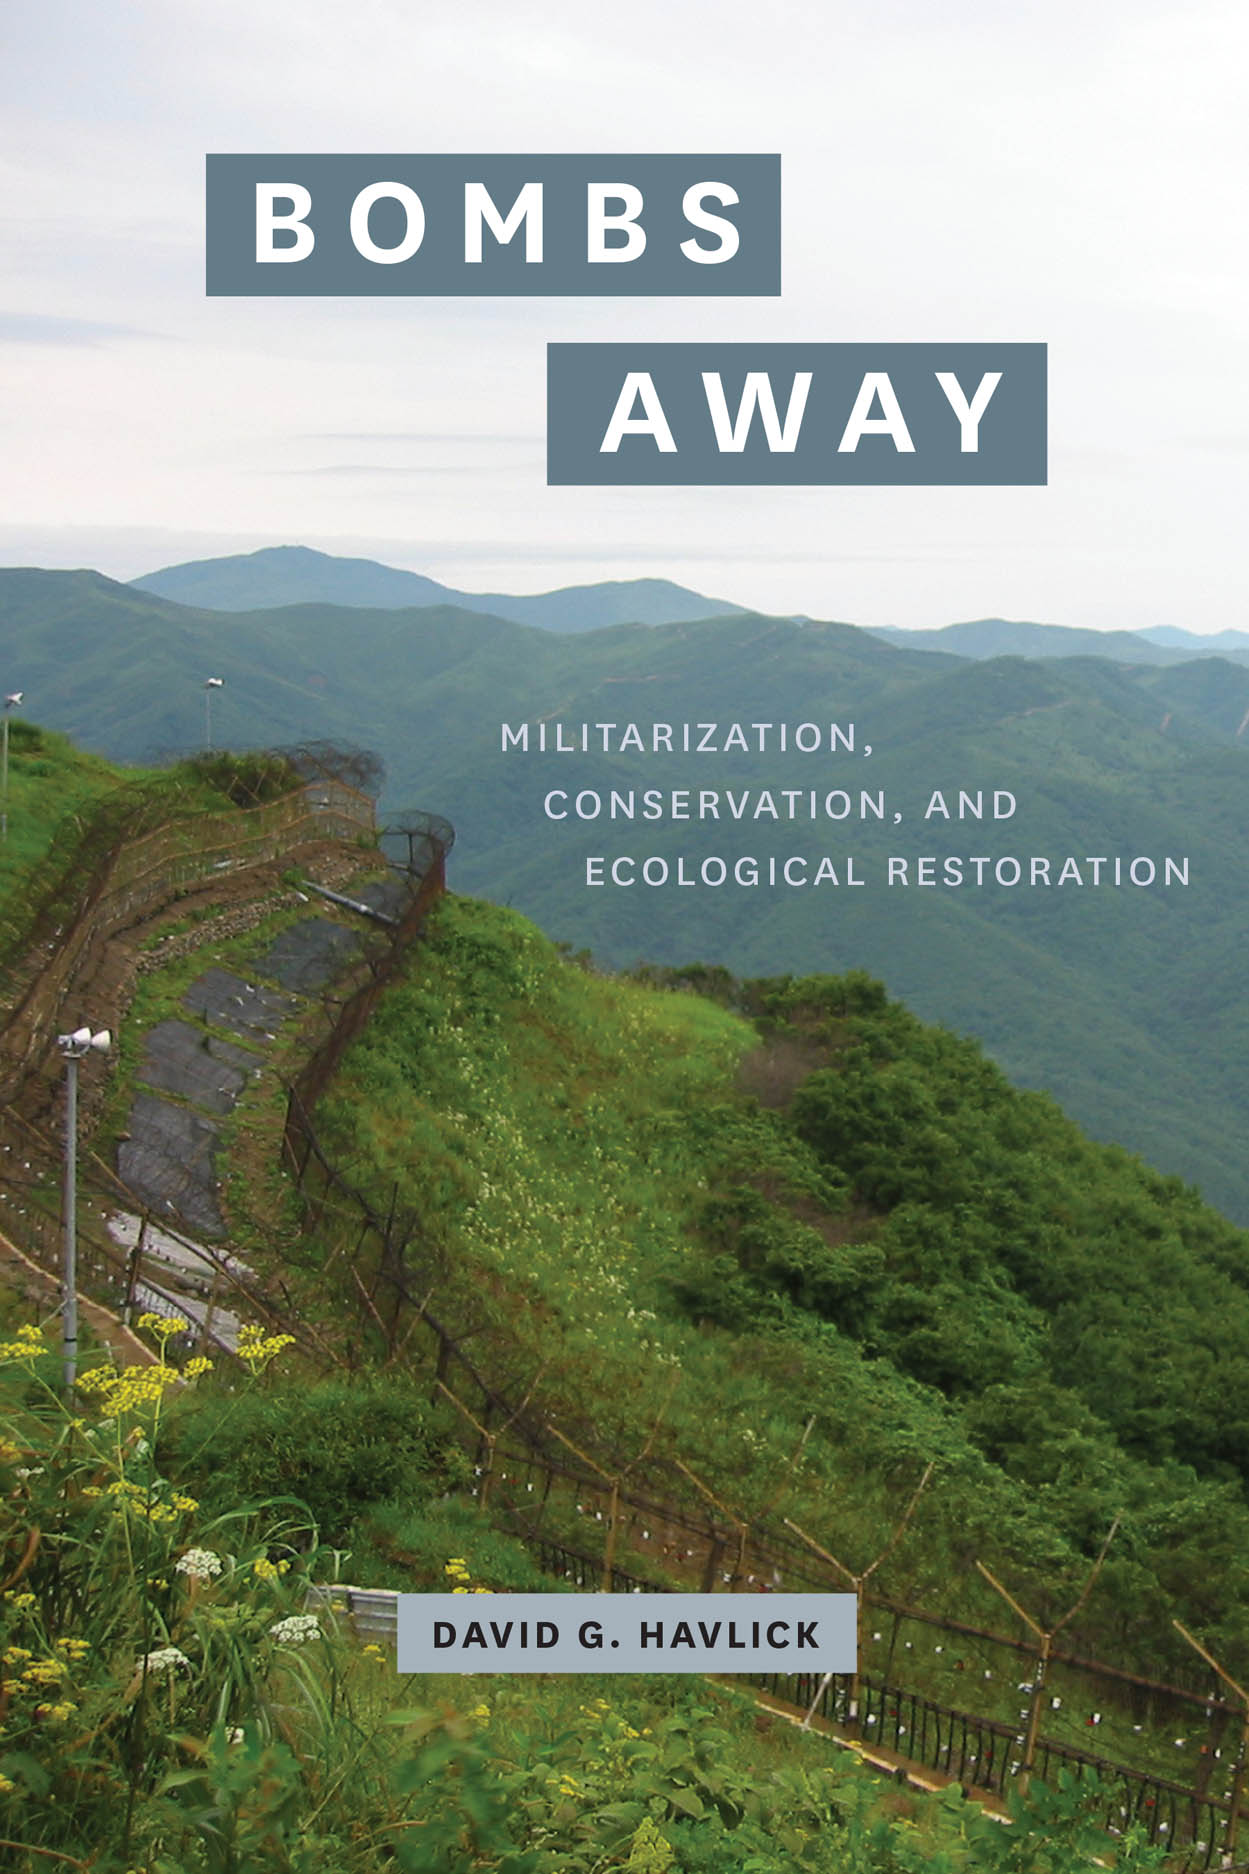 Bombs Away: Militarization, Conservation, and Ecological Restoration